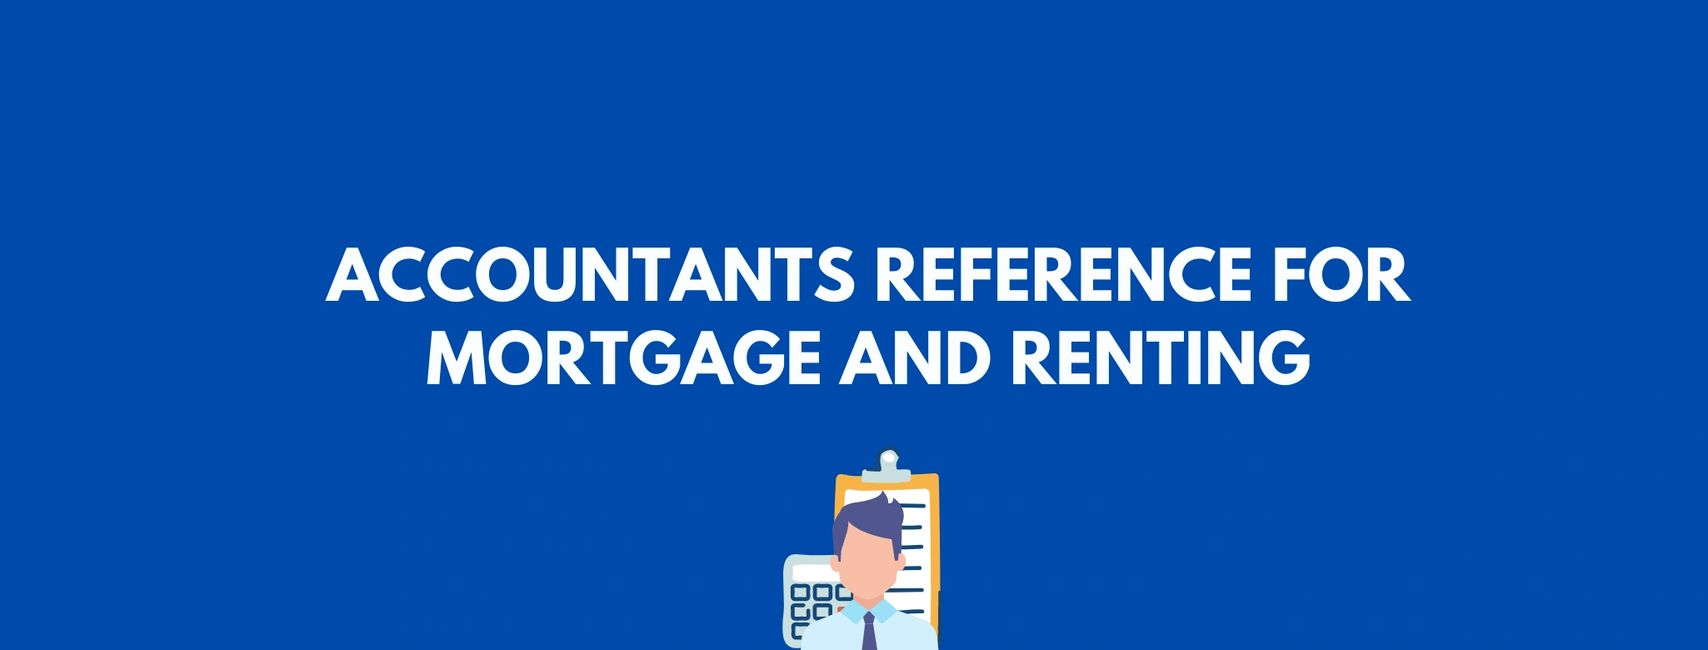 Accountants Reference for Mortgage and Renting (Letting)